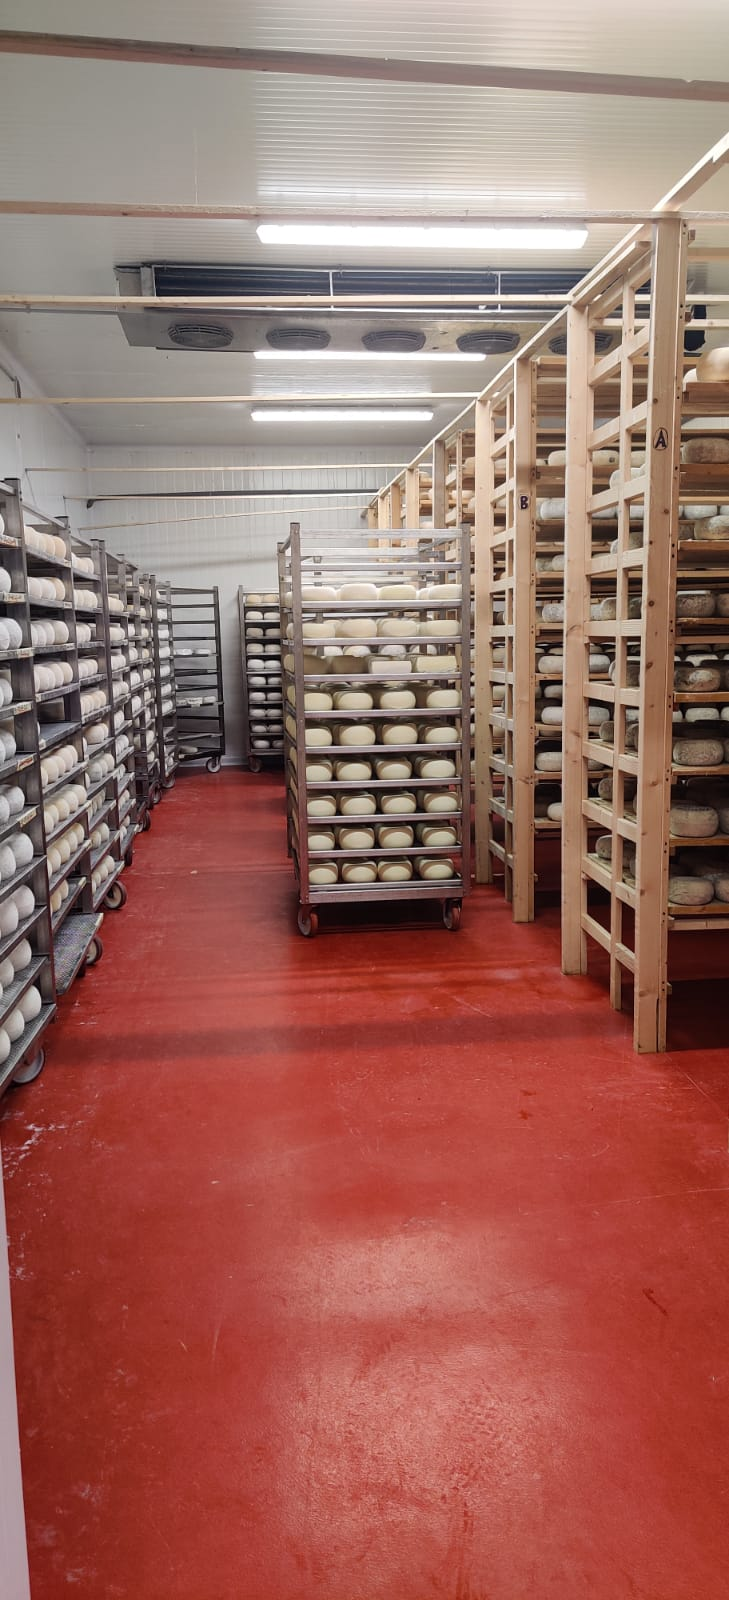 Cheeses aging